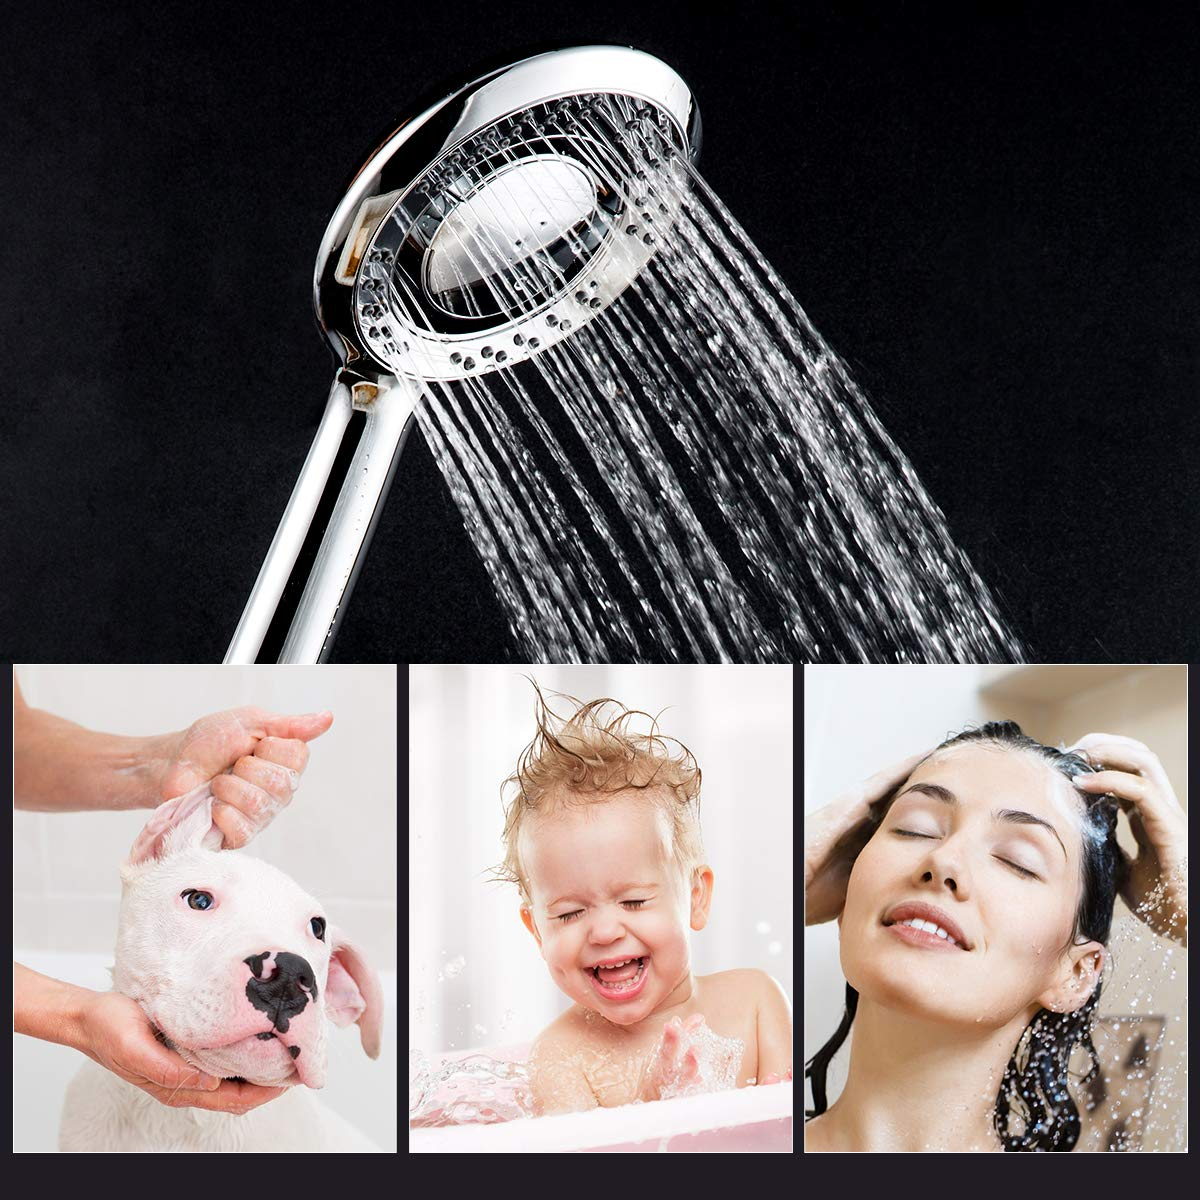 GAPPO Shower Head Handheld Rotating Adjustable 4 Modes Functions Spray Replacement